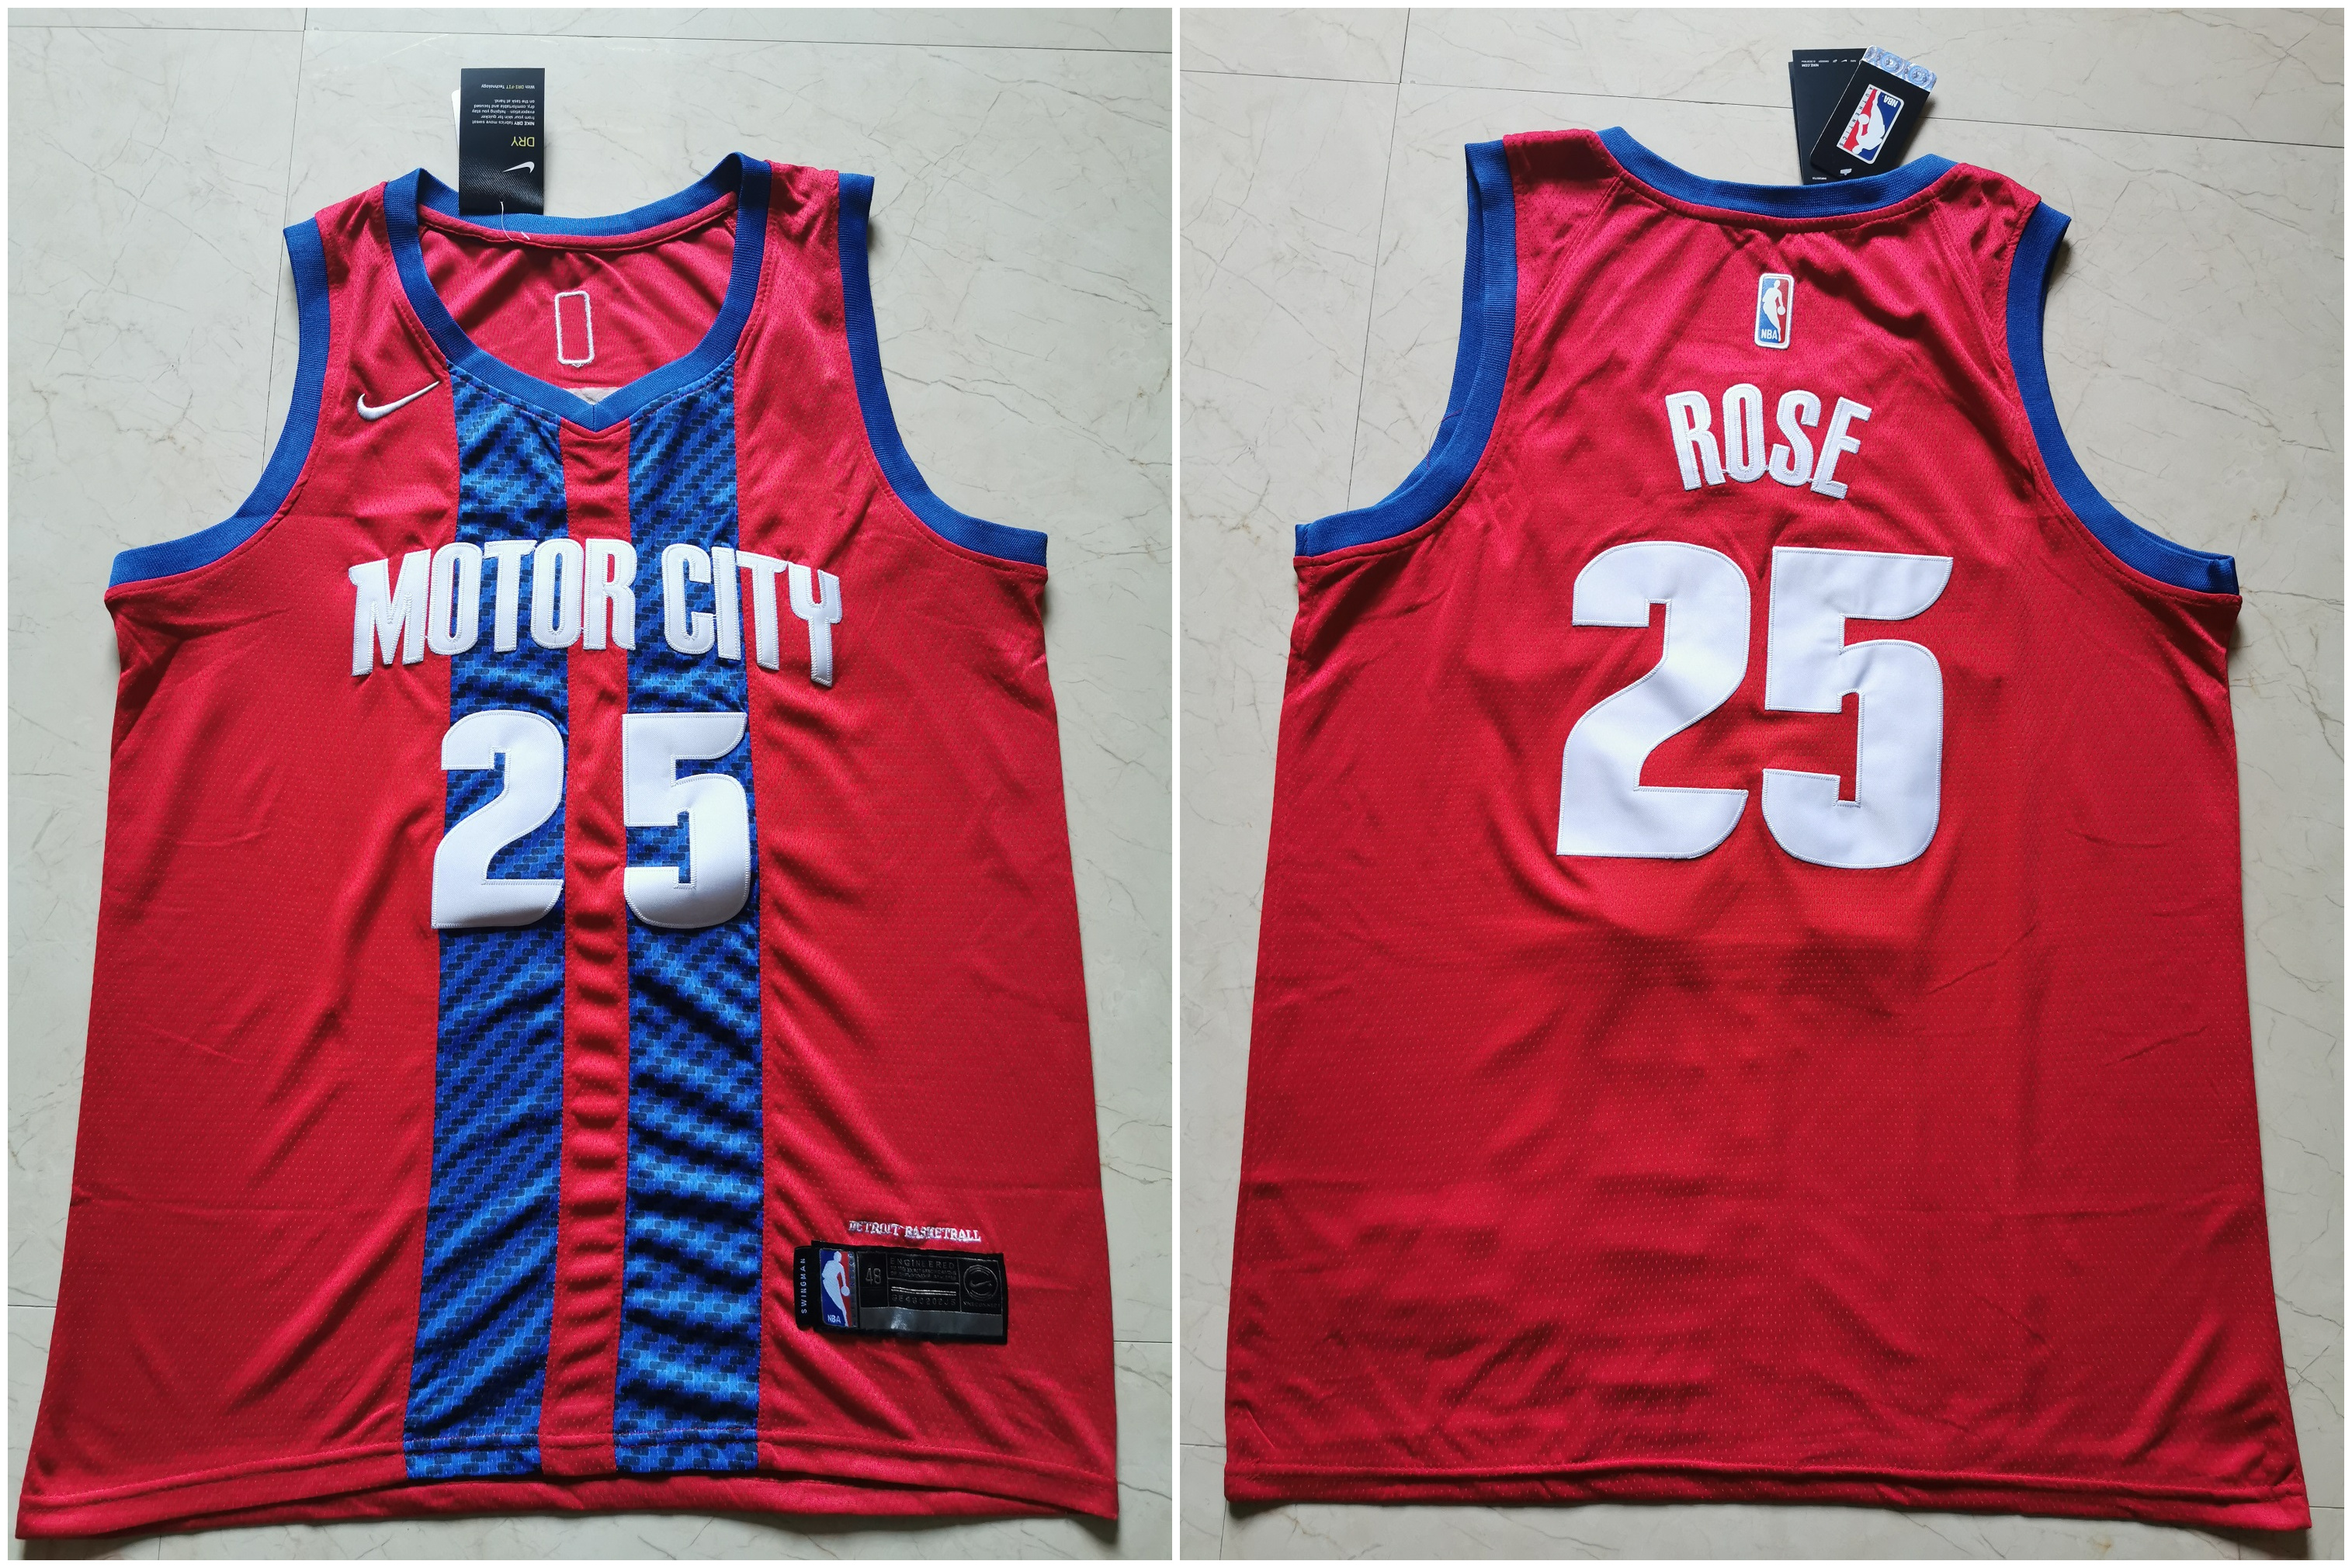 76ers #25 Ben Simmons Red 2019-20 City Edition Nike Swingman Jersey